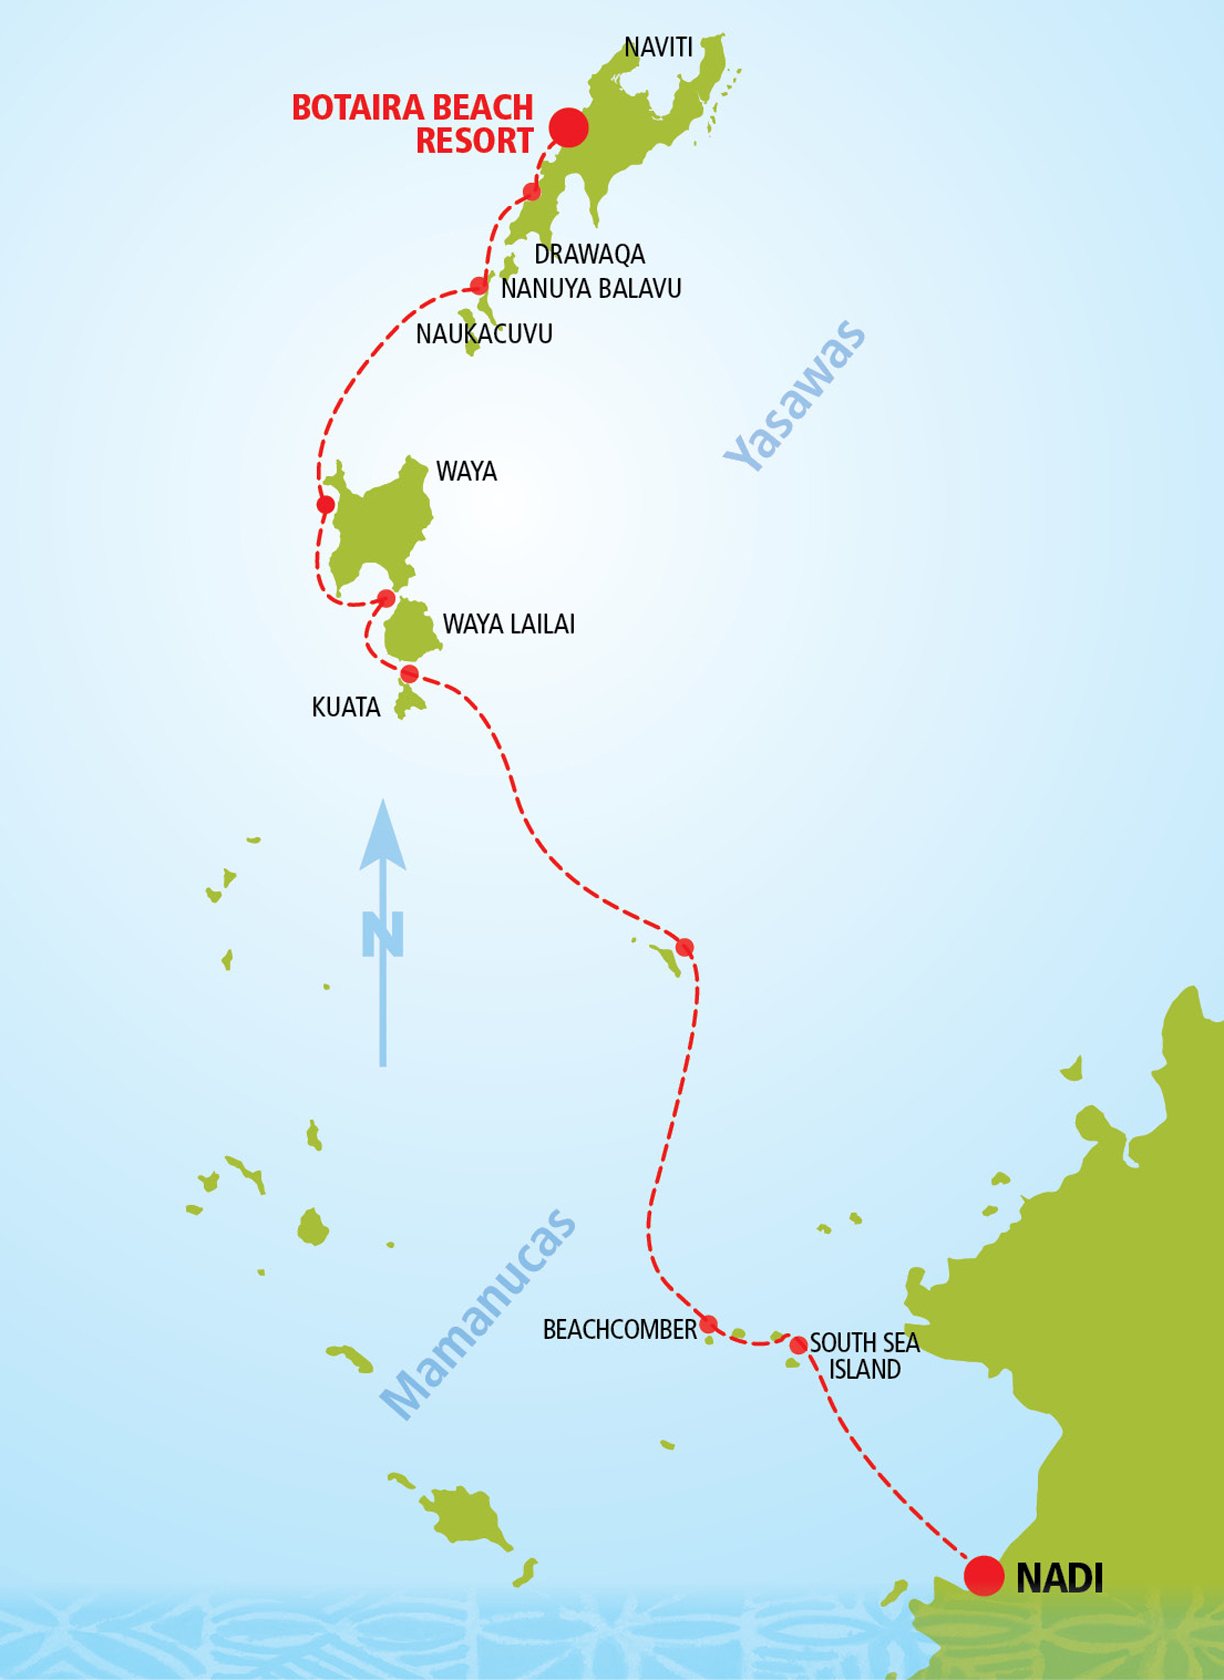 Botaira Day Cruise Route Map